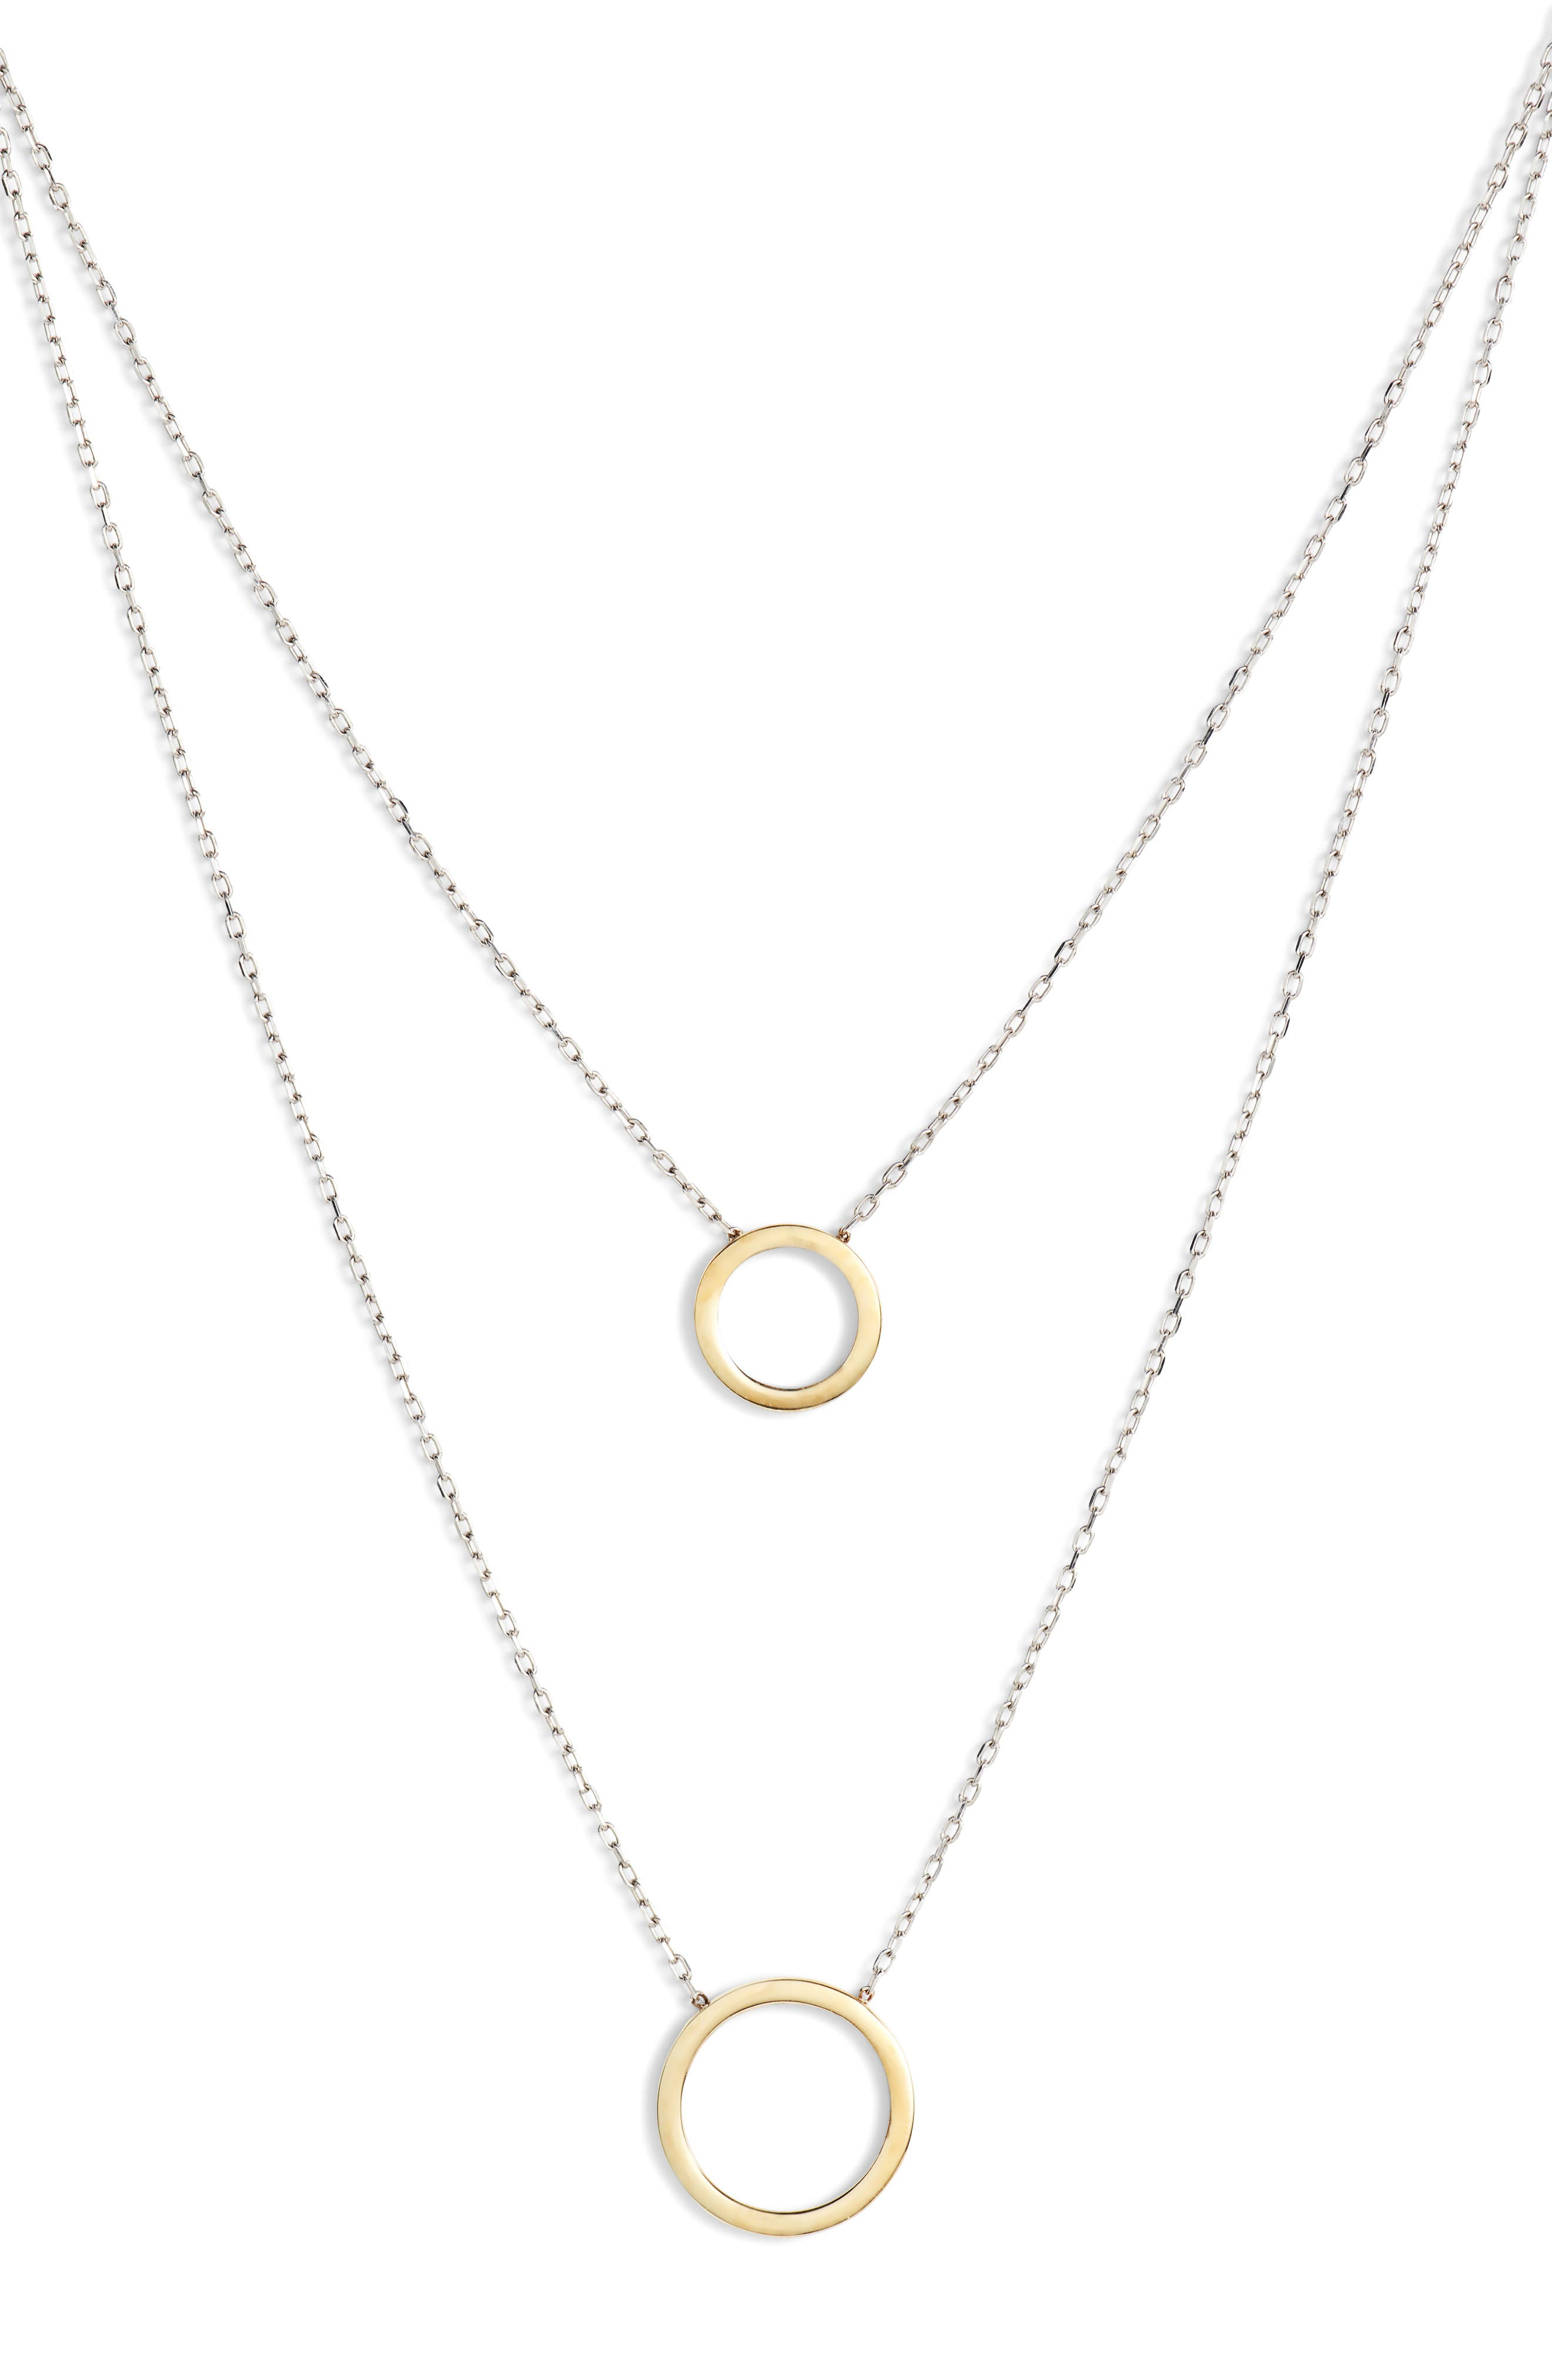 Ava Two Tone Open Circle Necklace,                             Main thumbnail 1, color,                             716